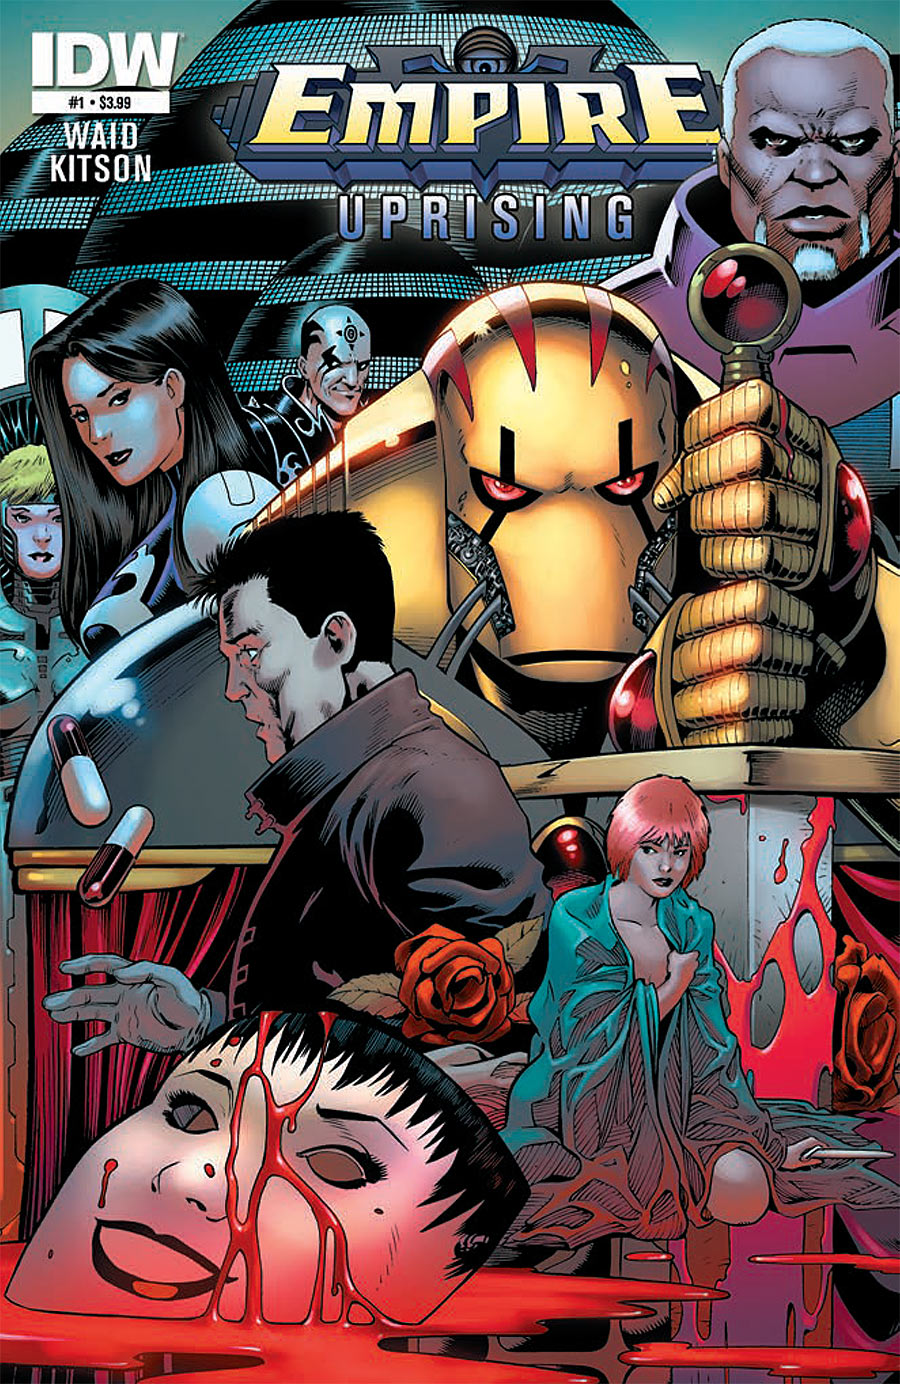 Empire Uprising Cover featuring Golgoth by Mark Waid and Barry Kitson